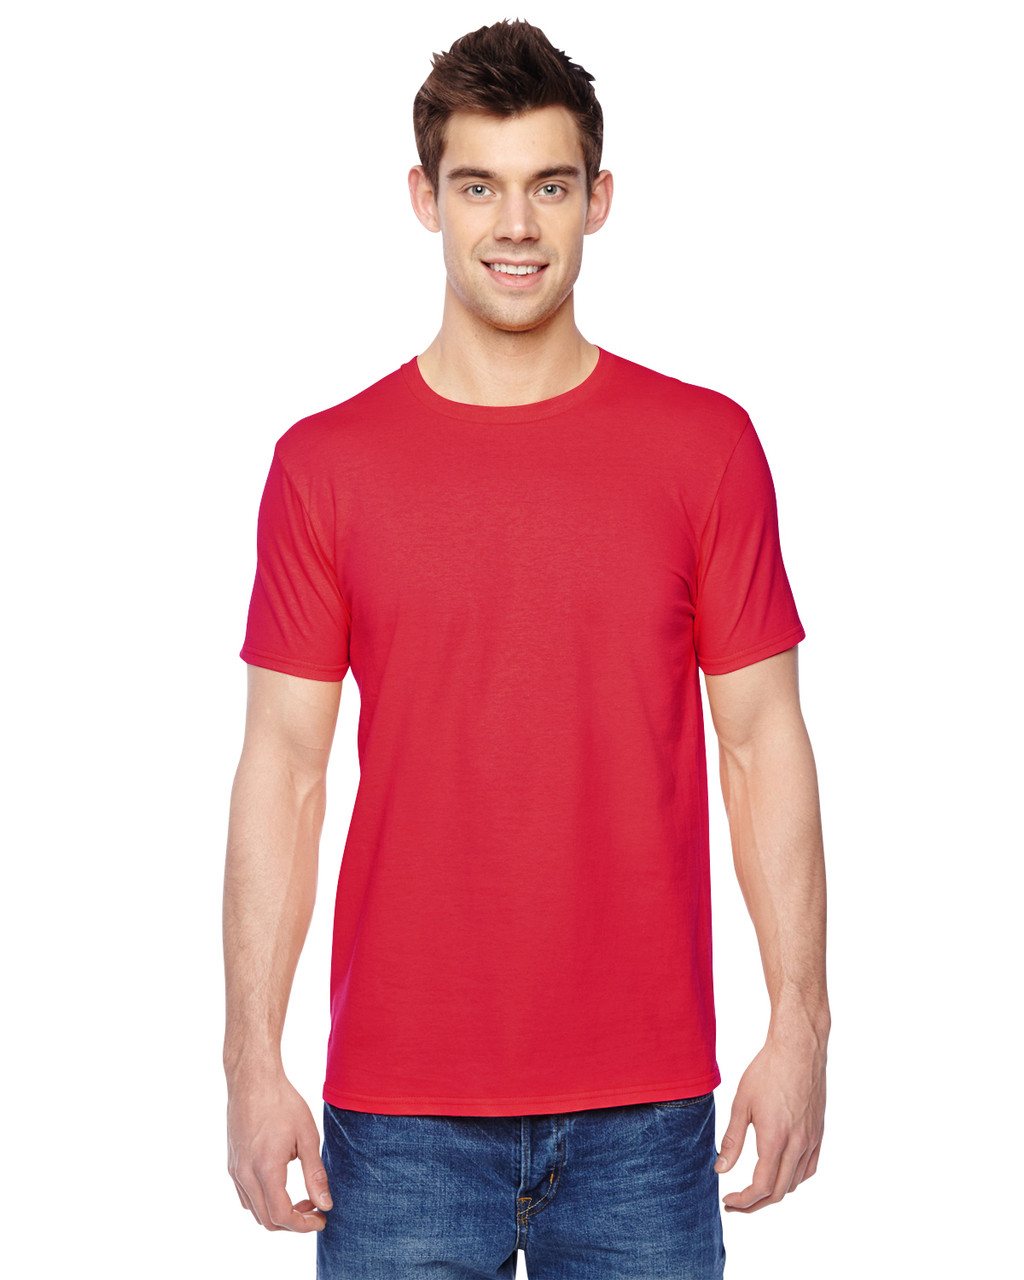 Fiery Red - SF45R Fruit of the Loom Softspun Cotton T-Shirt | Blankclothing.ca